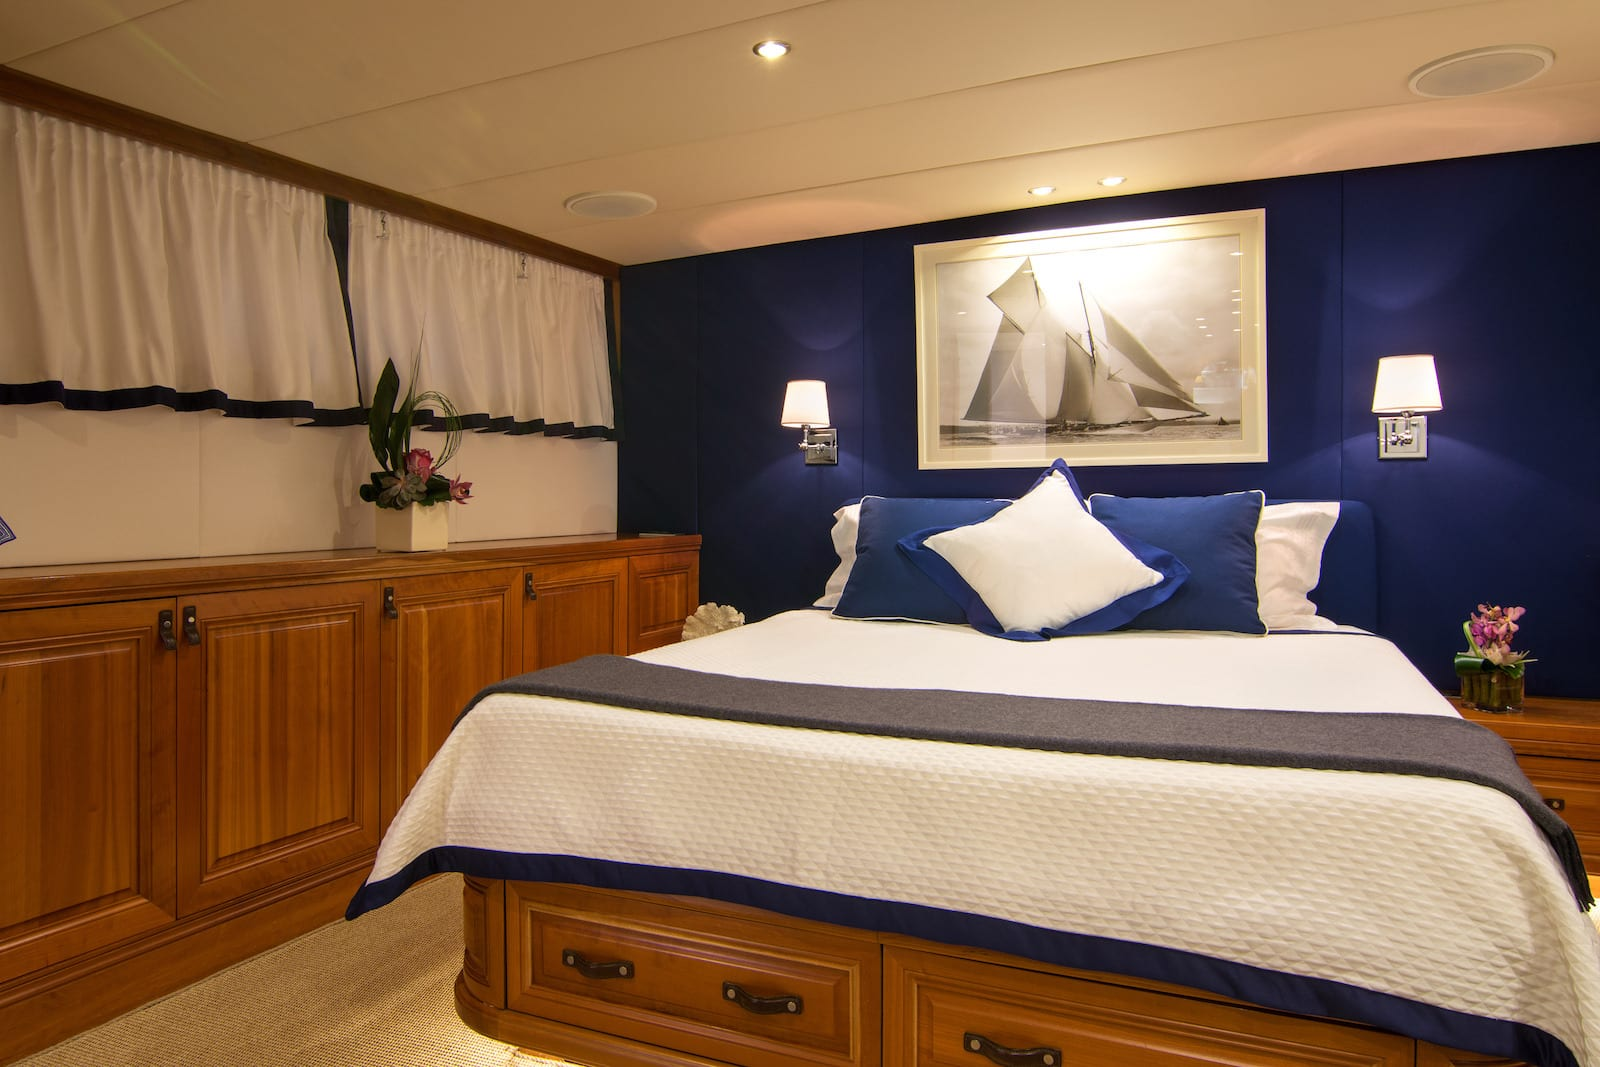 PARVATI for charter   VALEF YACHTS (23) -  Valef Yachts Chartering - 1673